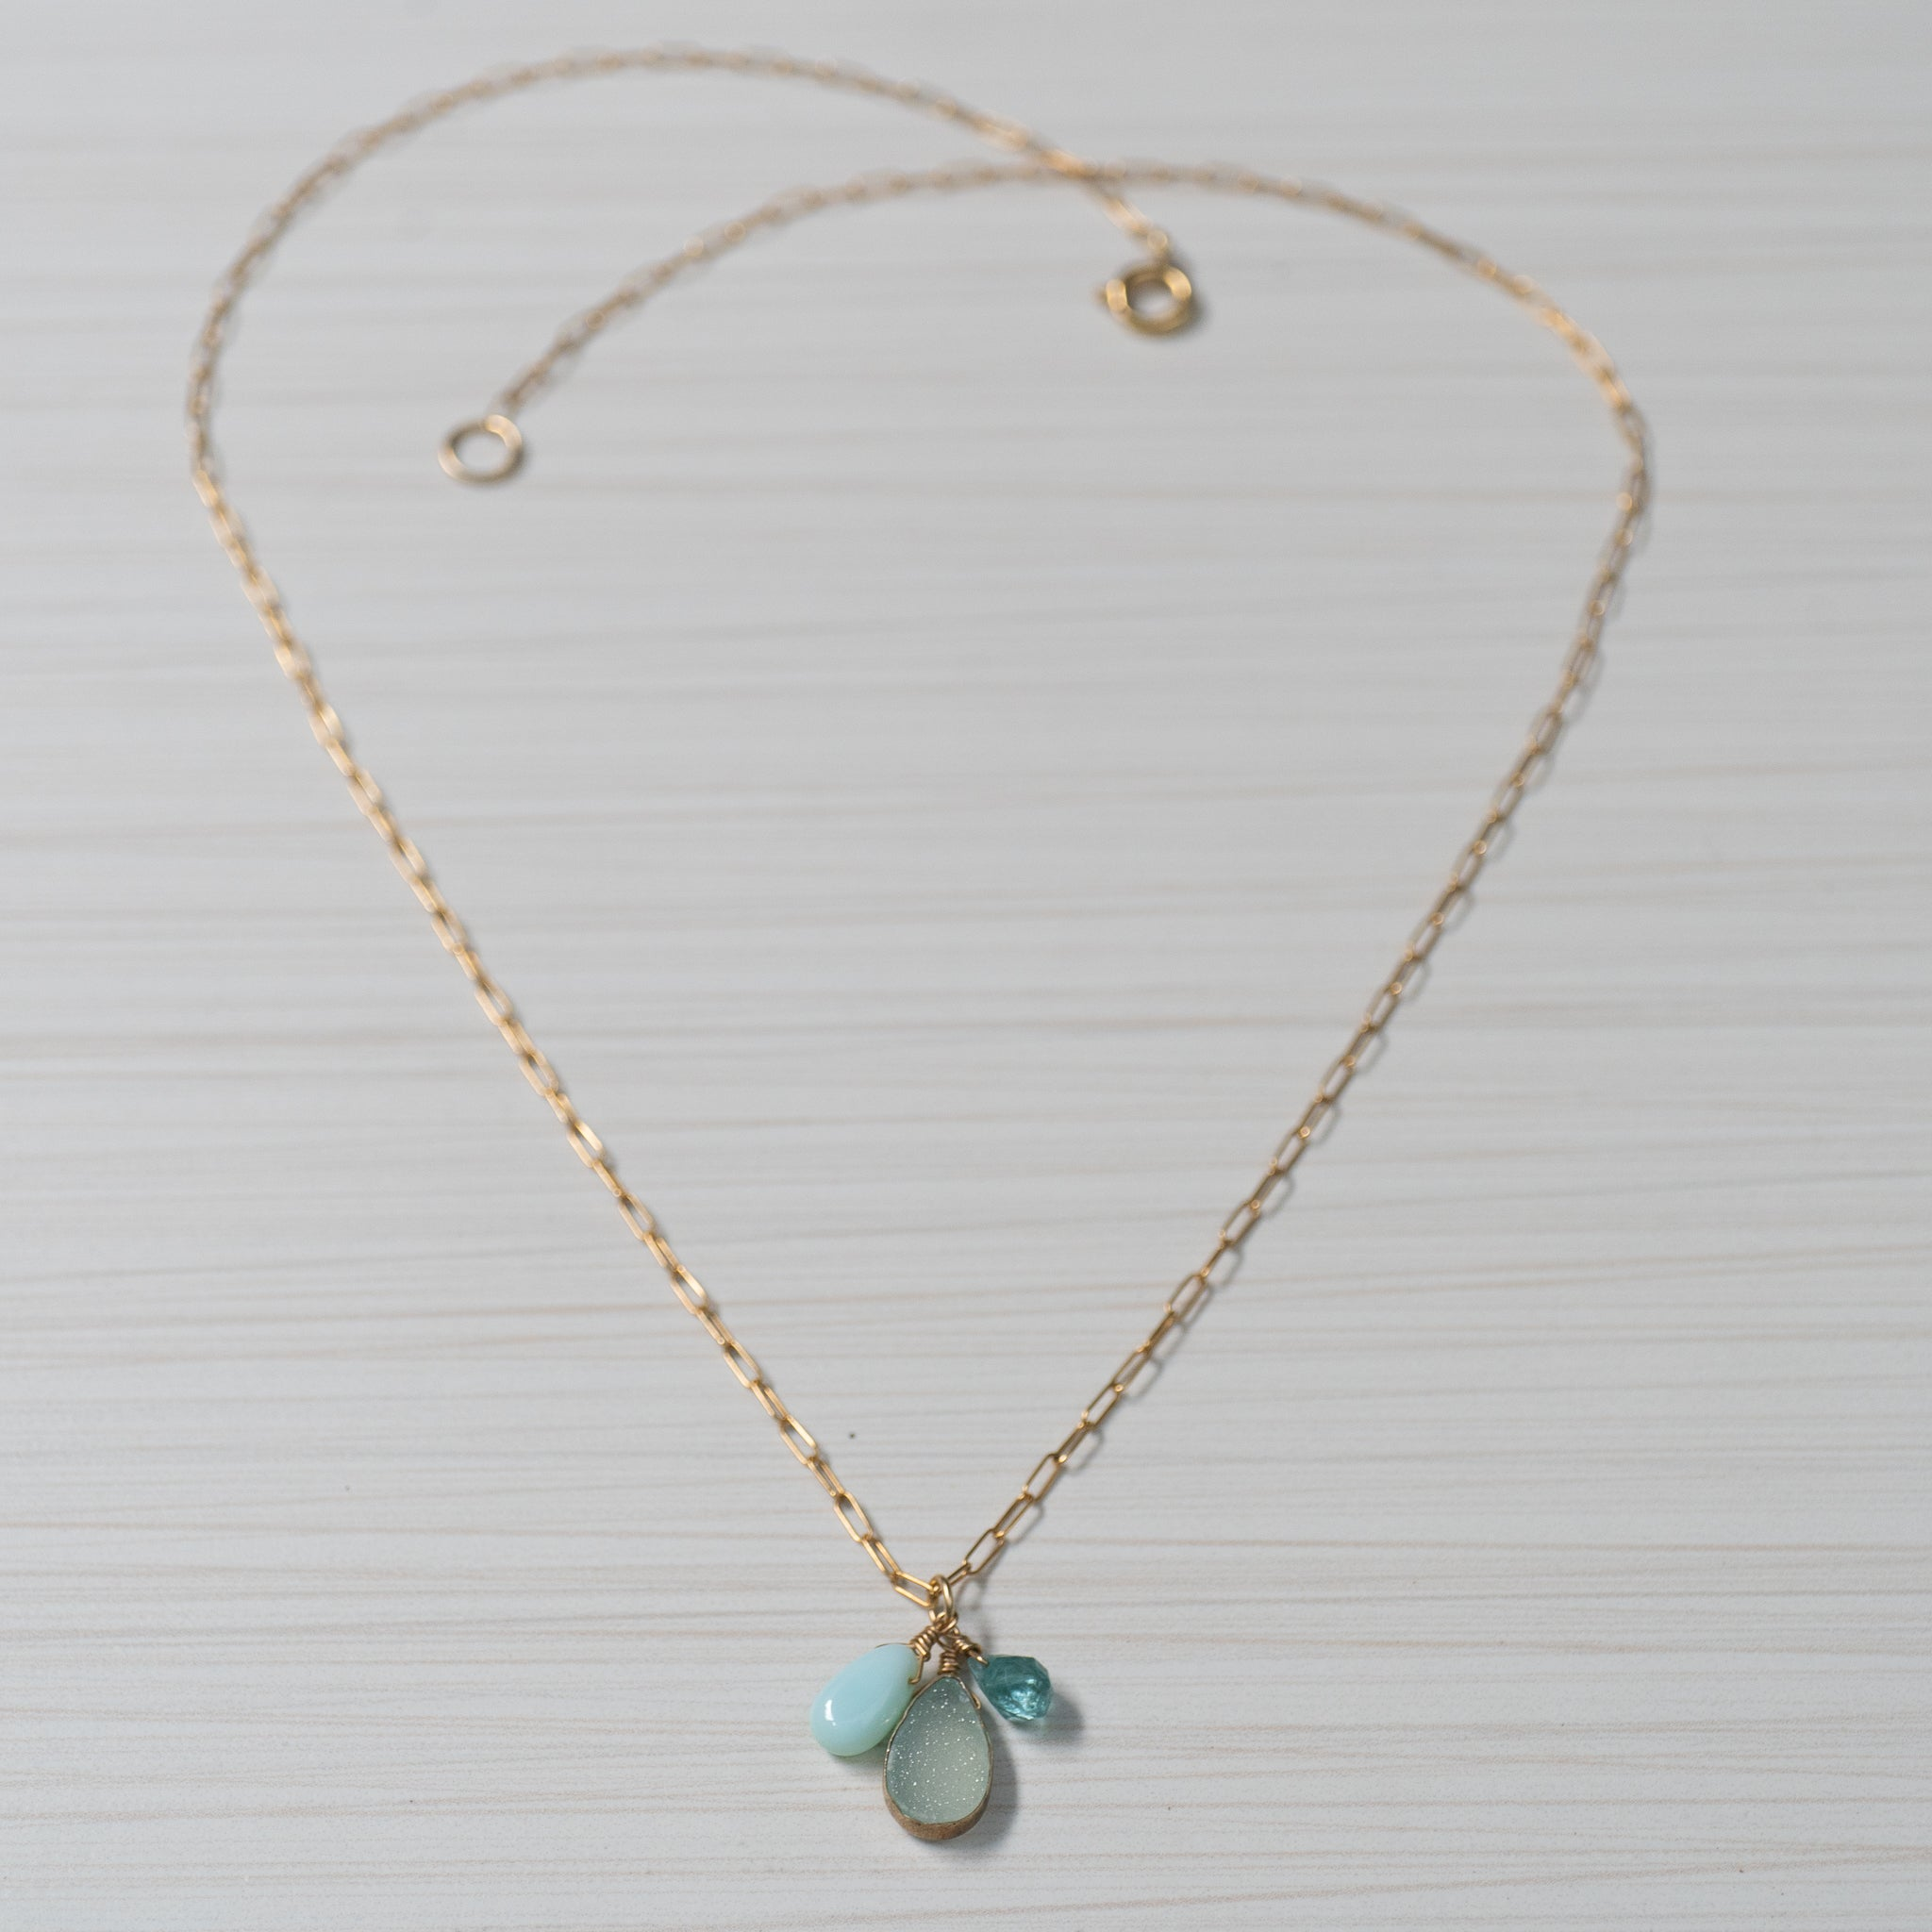 blue gemstones on simple gold necklace handmade in Hawaii by eve black jewelry  Edit alt text